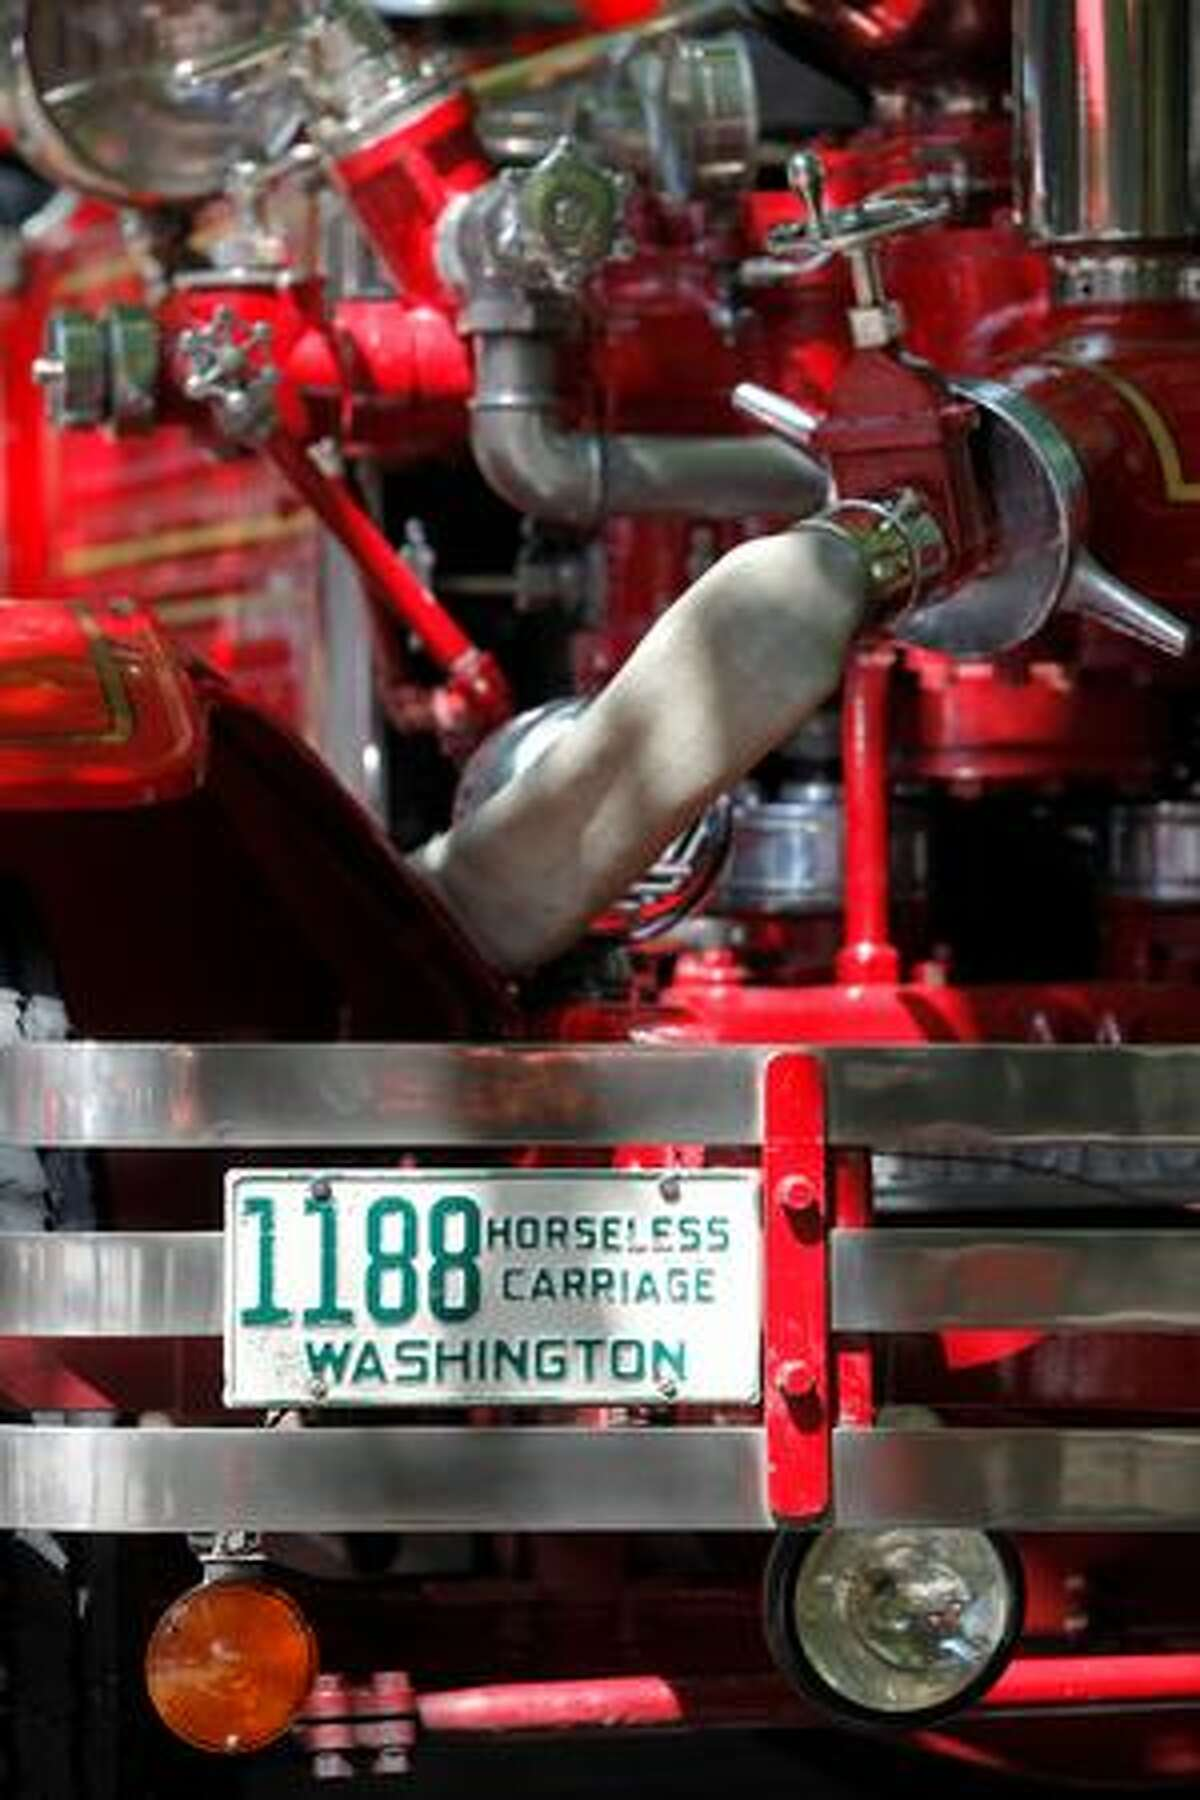 A 1927 Ahrens-Fox Piston Pumper sits on display during the Pioneer Square Fire Festival in Seattle.